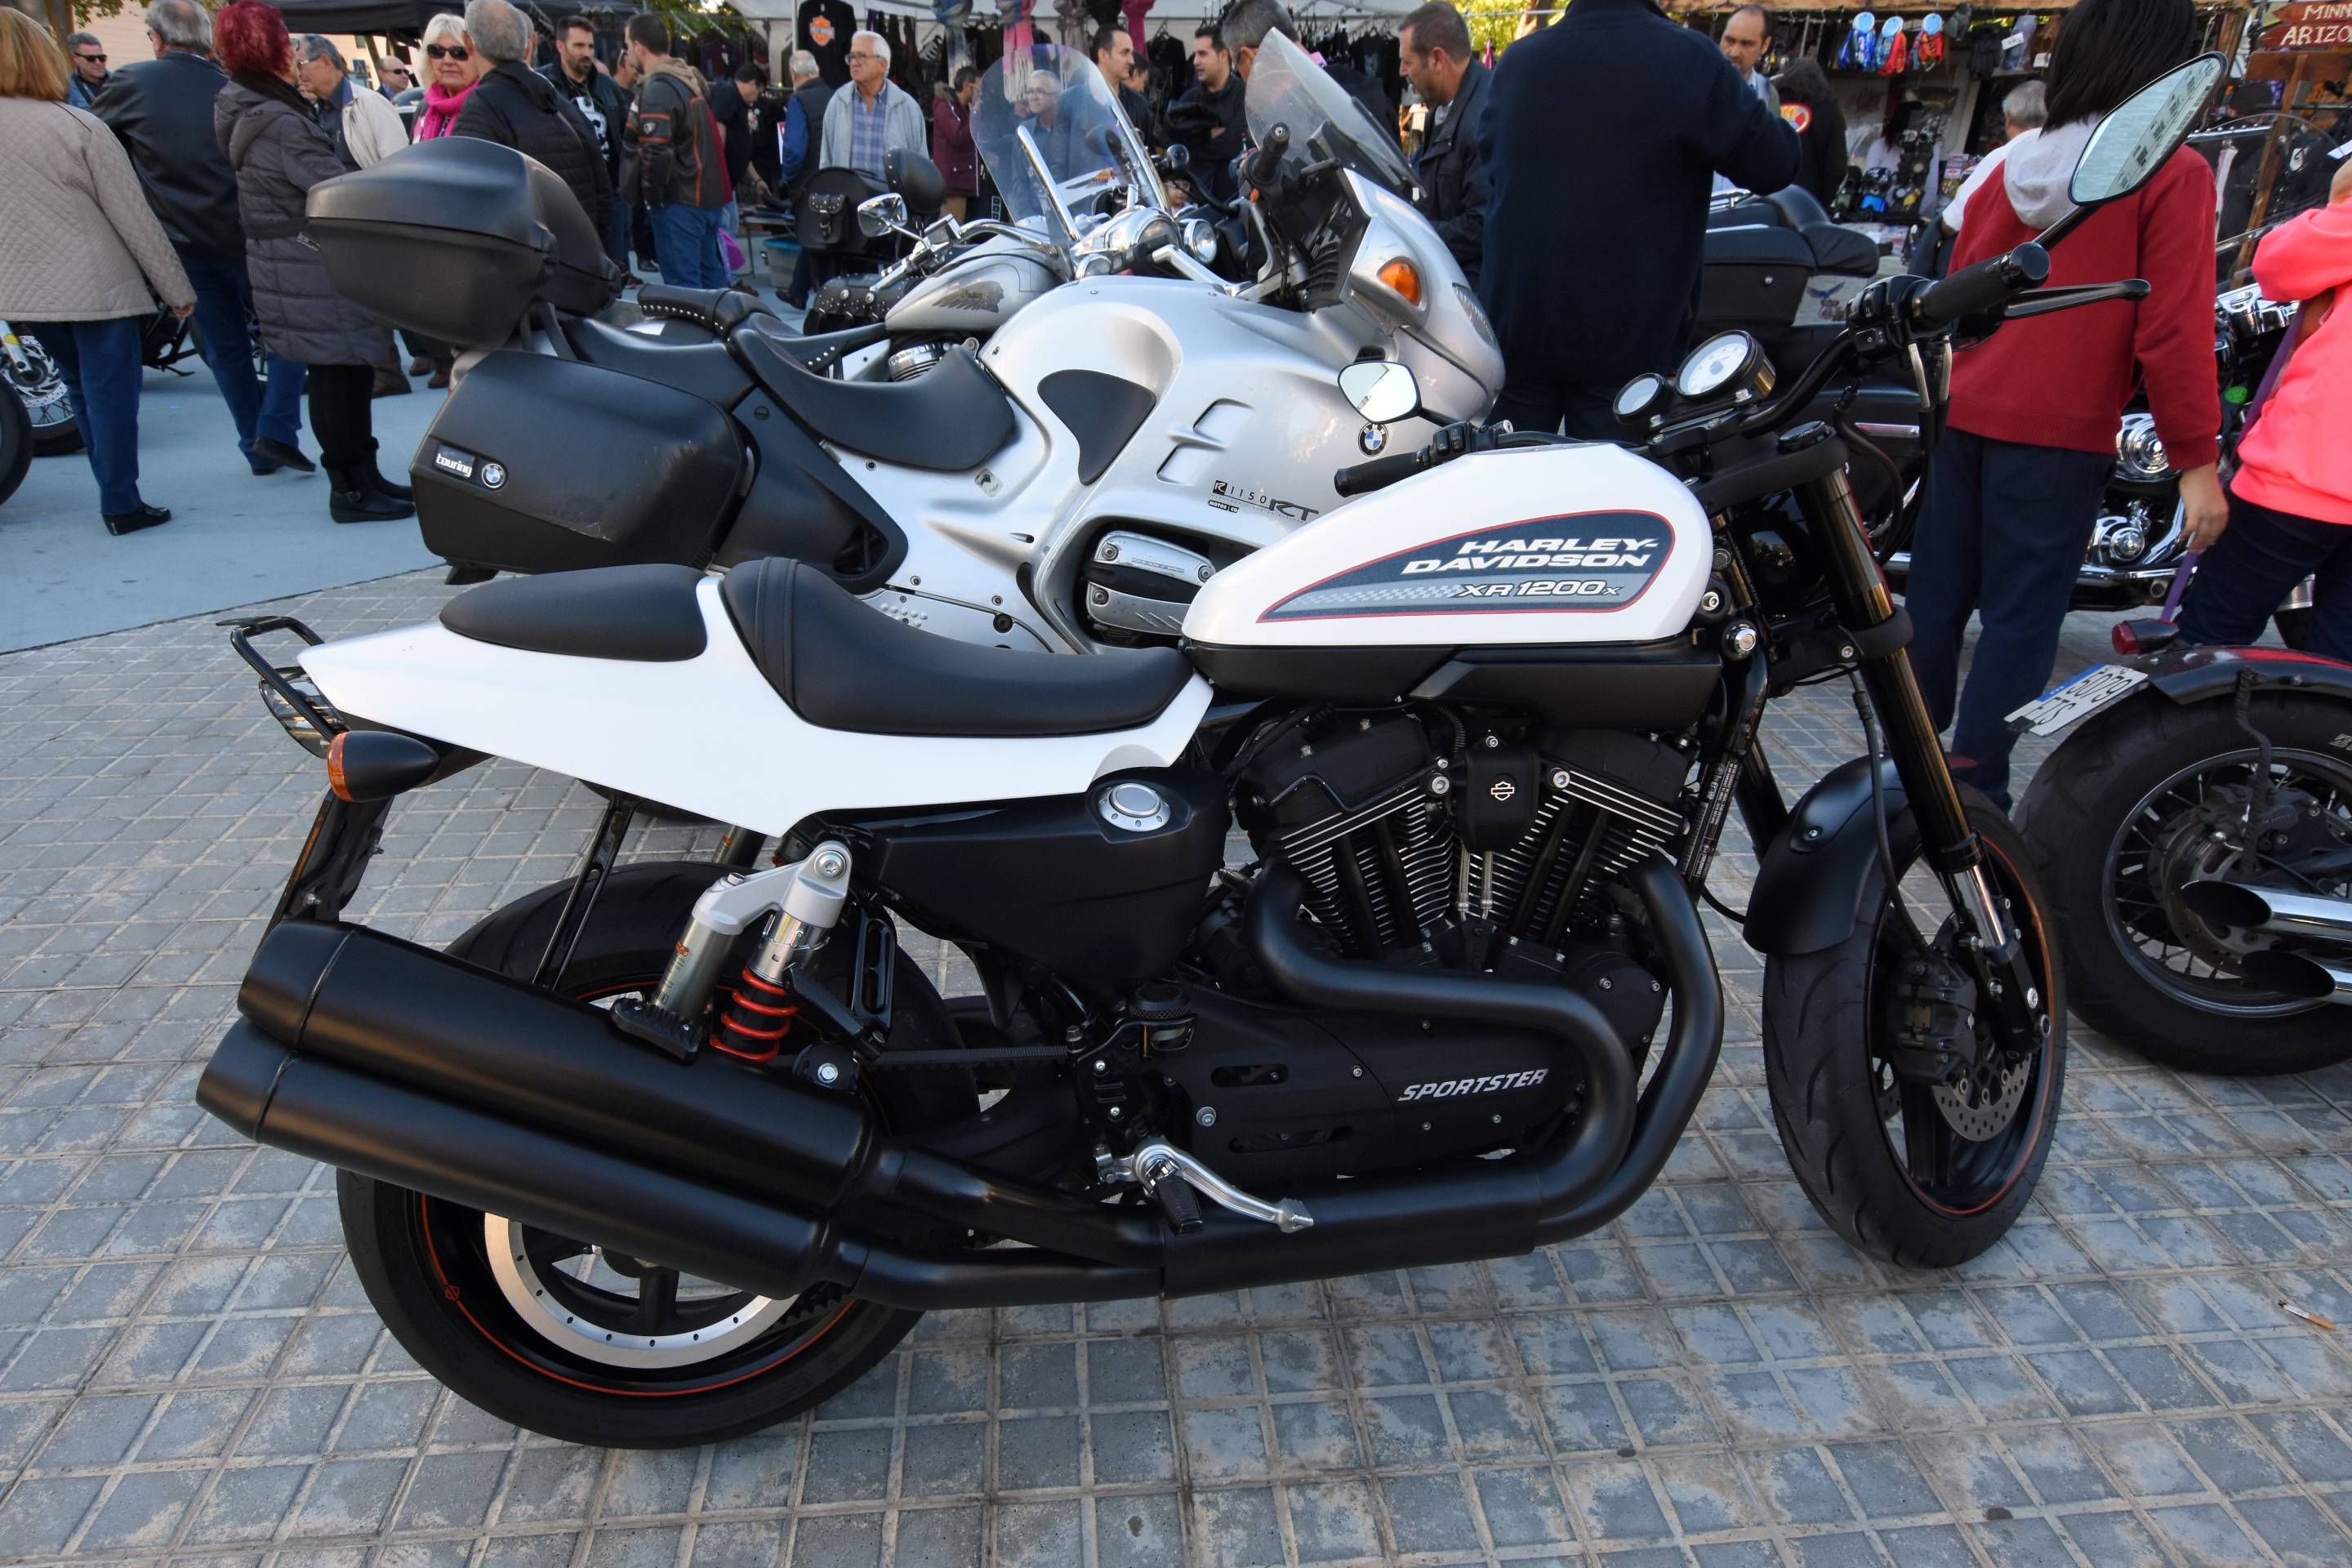 Motorcycle displays in L'Hospitalet where motorcycles of